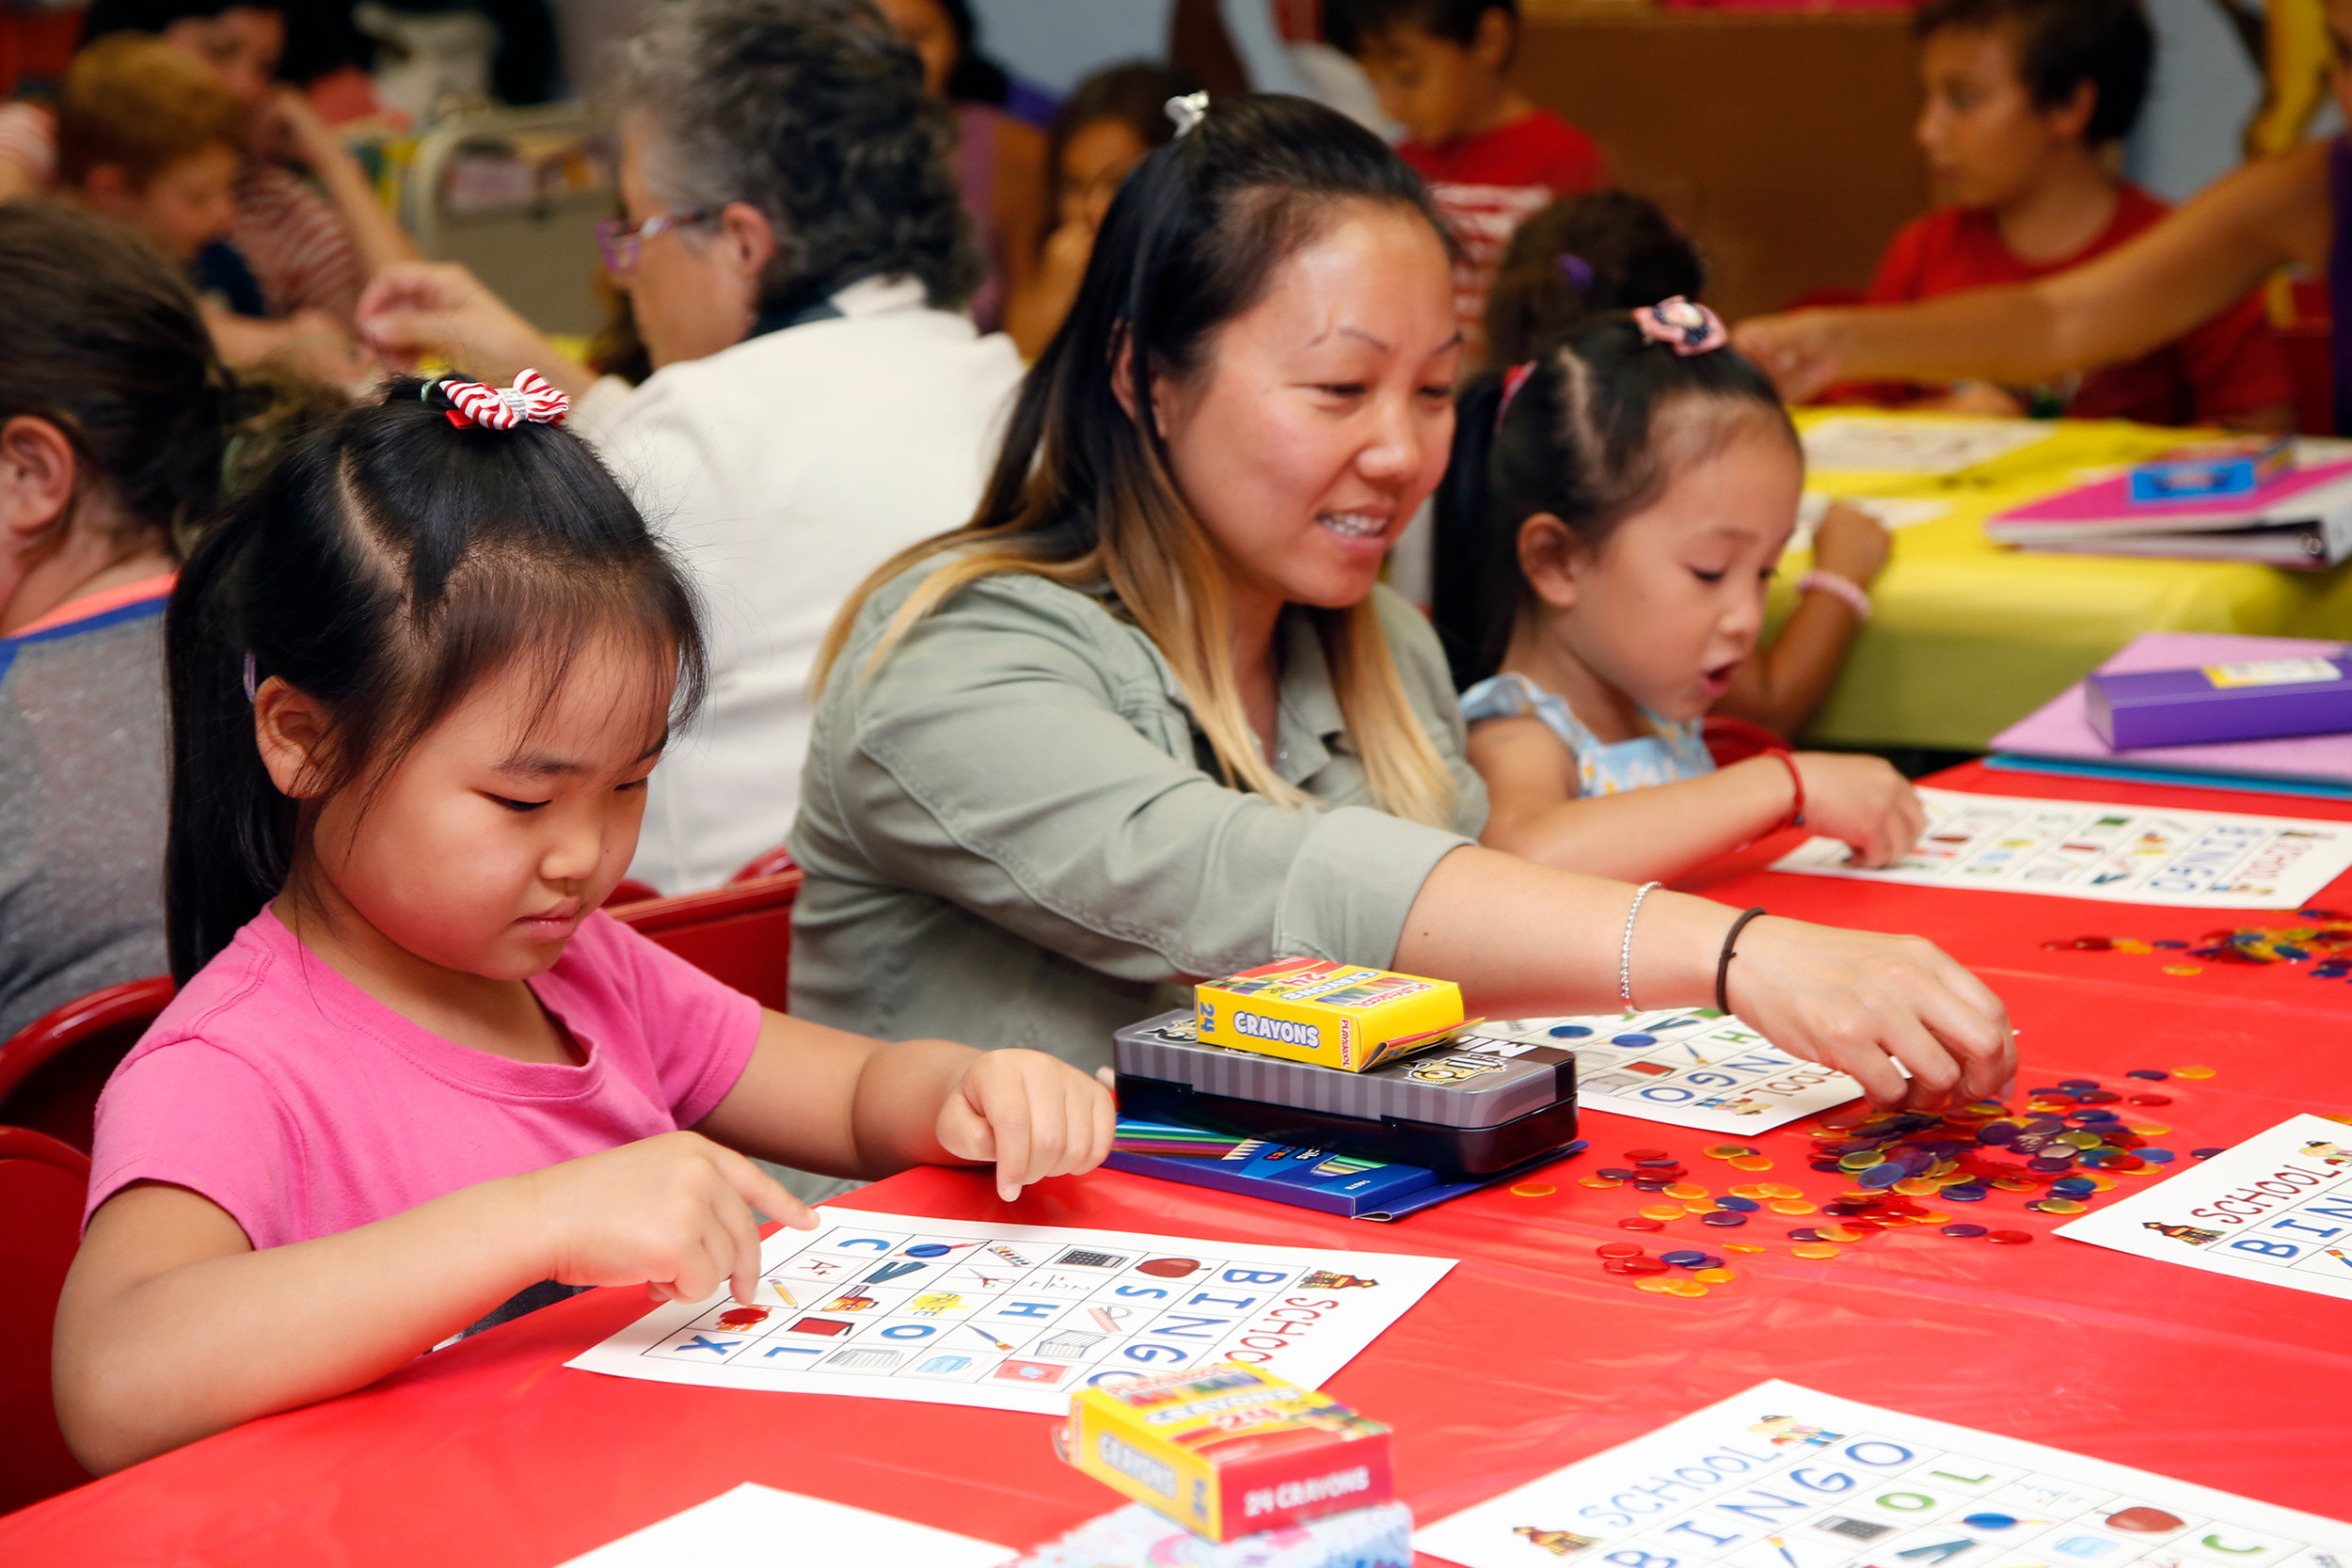 Madelynne Tse, 6, Kelly Xu and Ophelia Lin, 6, filled their Bingo cards.